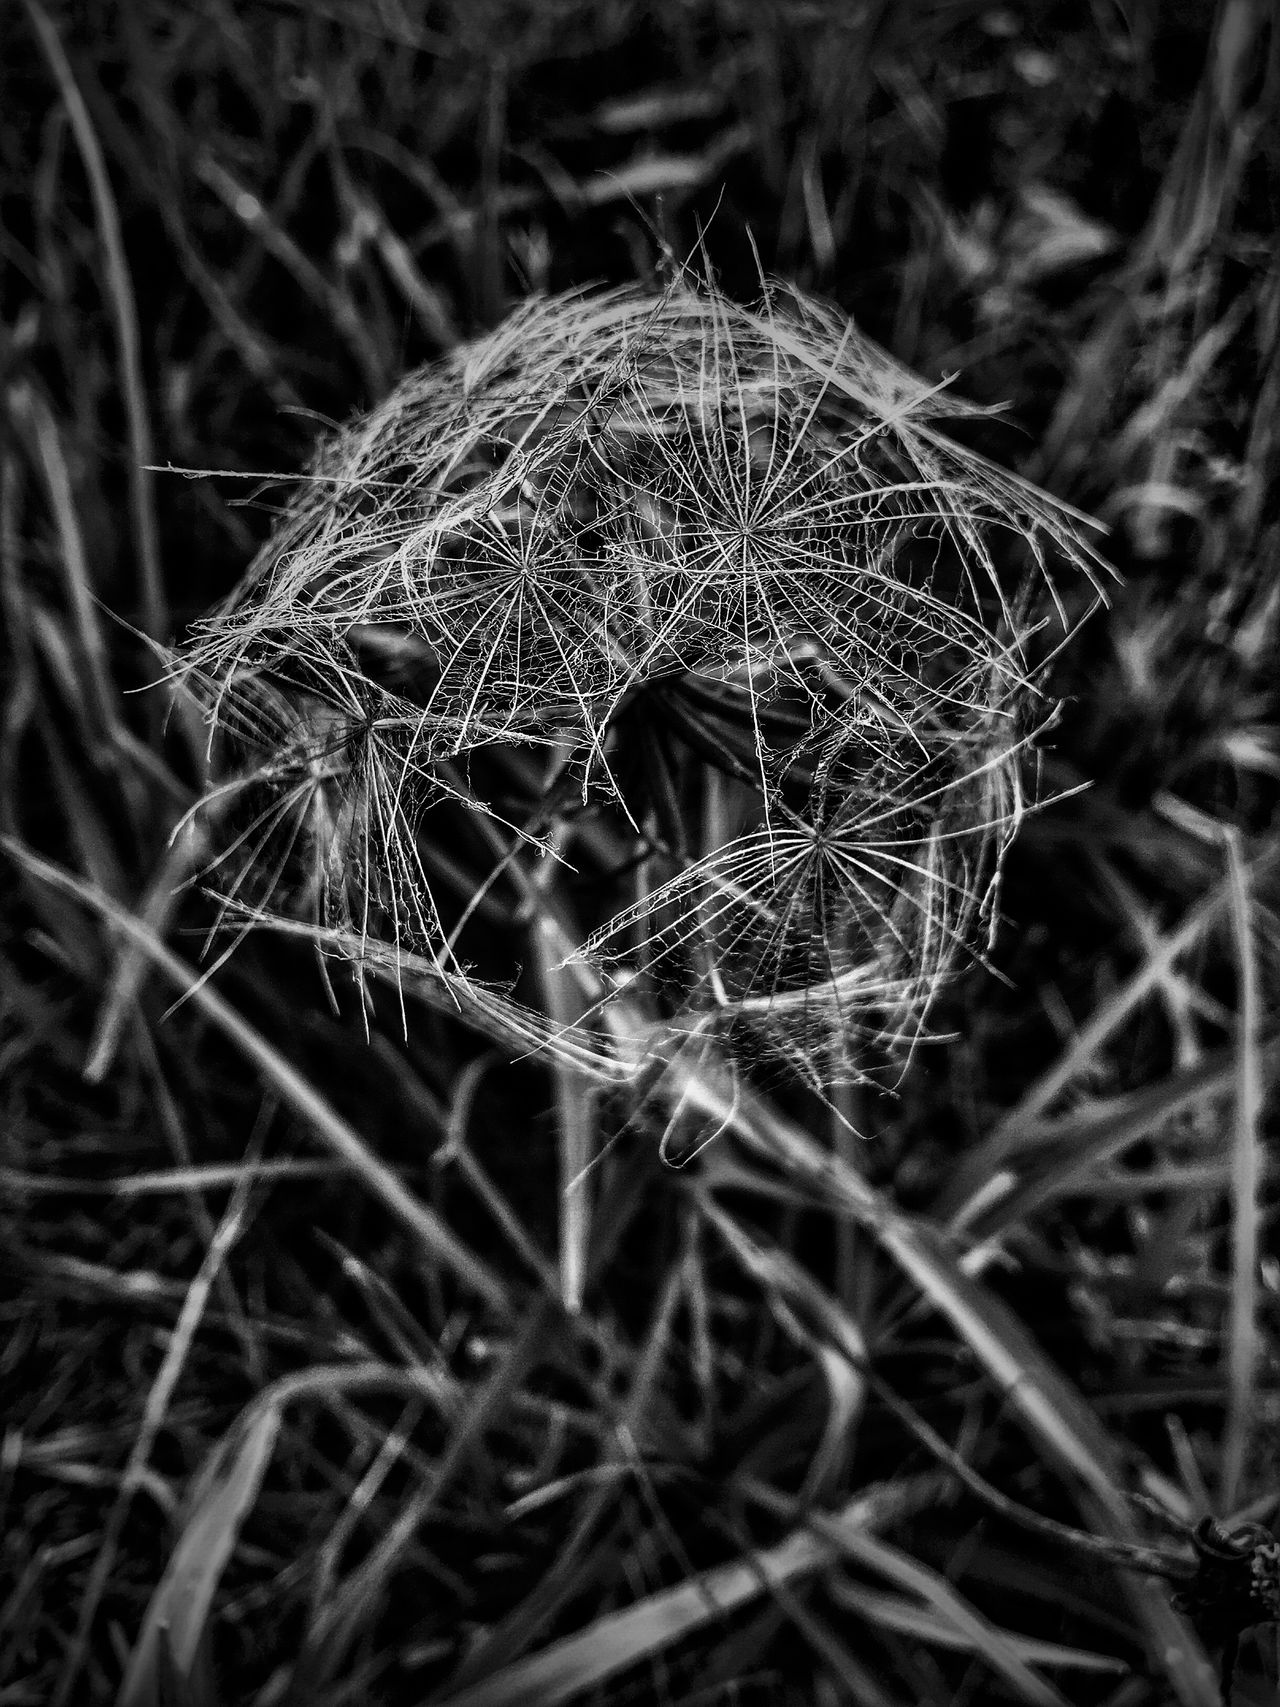 AMPt - My Perspective Abstractions Blackandwhite Eye4photography  Black And White Abstract Photography Abstract Nature Blackandwhite Photography Nature Porn Shapes In Nature  Nature_collection Black & White Make A Wish Make A Wish ! EyeEm Exploring Nature_collection Textures And Surfaces